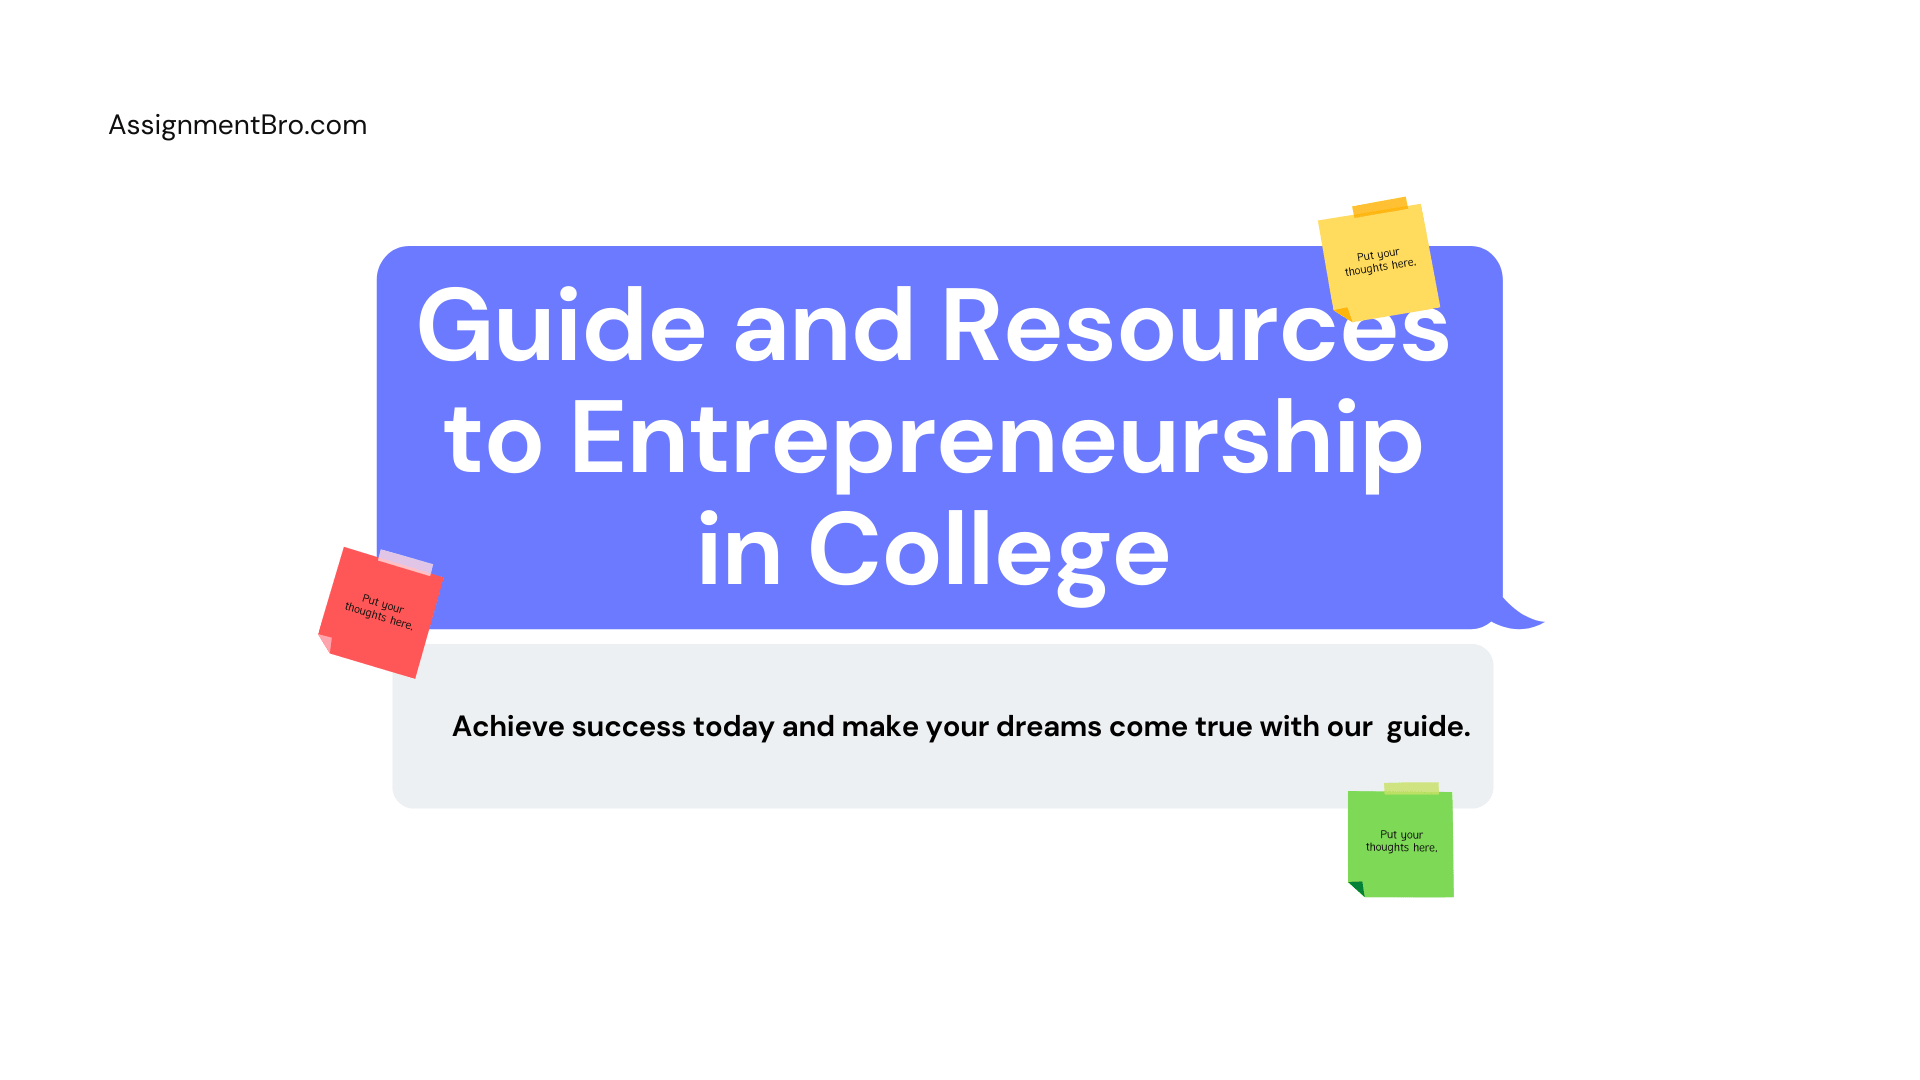 Guide and Resources to Entrepreneurship in College